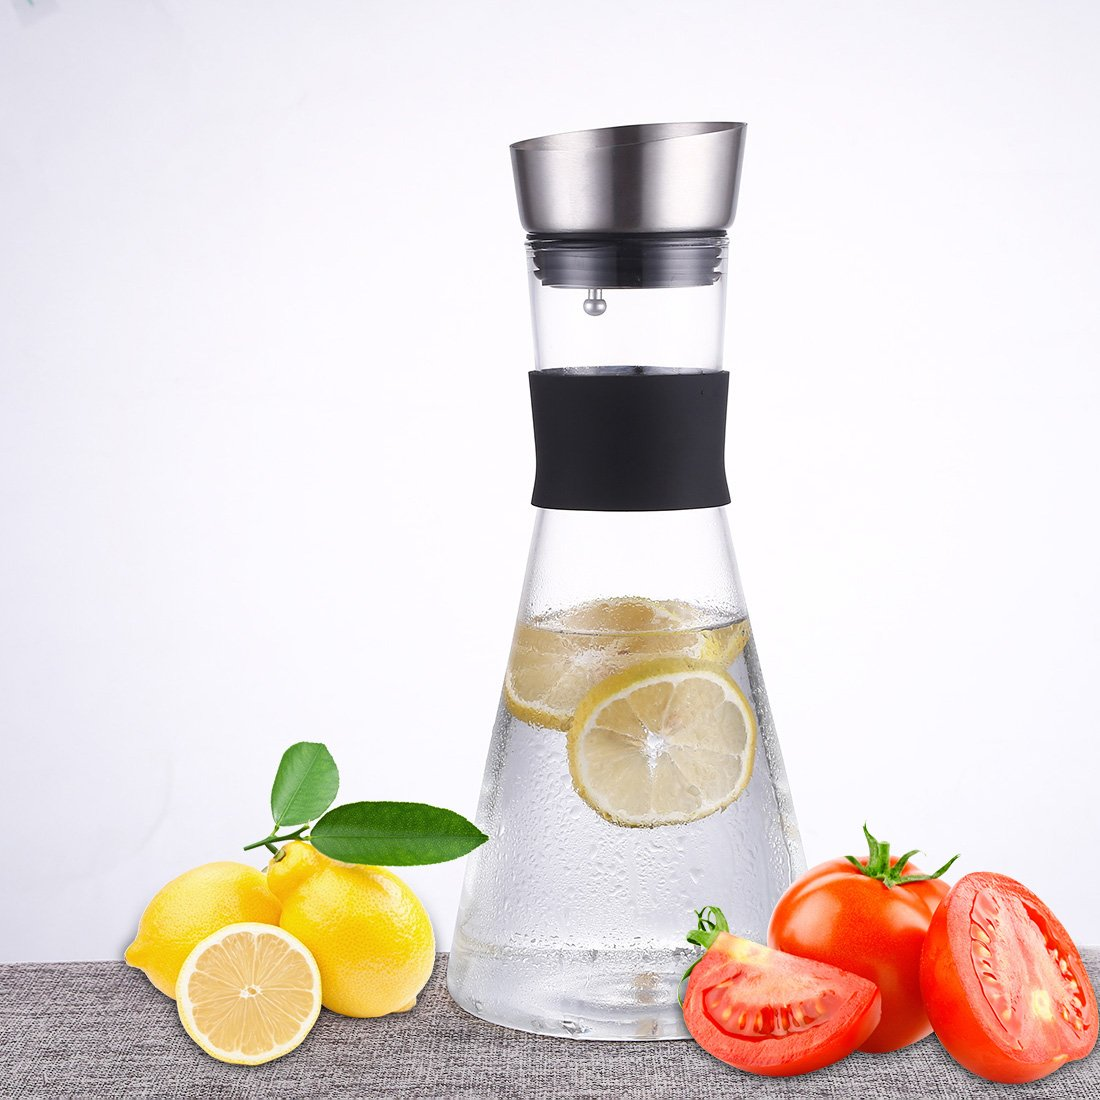 JIAQI 51 Ounces Borosilicate Glass Carafe with Stainless Steel Silicone Flip-top Lid - Glass Water Pitcher Glass Fridge Carafe Ice Tea Maker QLYGYBL560